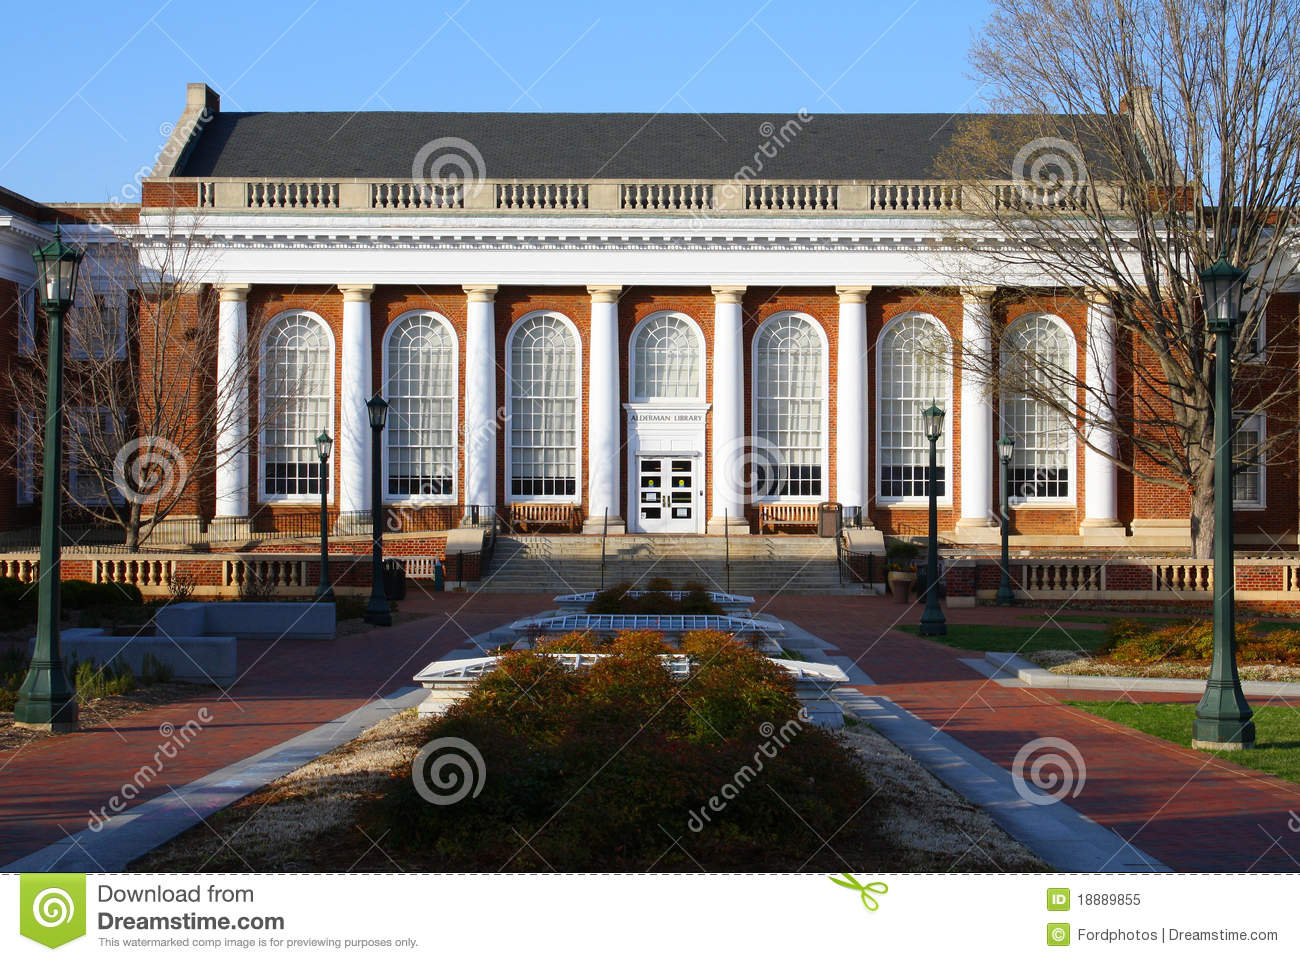 Alderman Library at the University of Virginia.